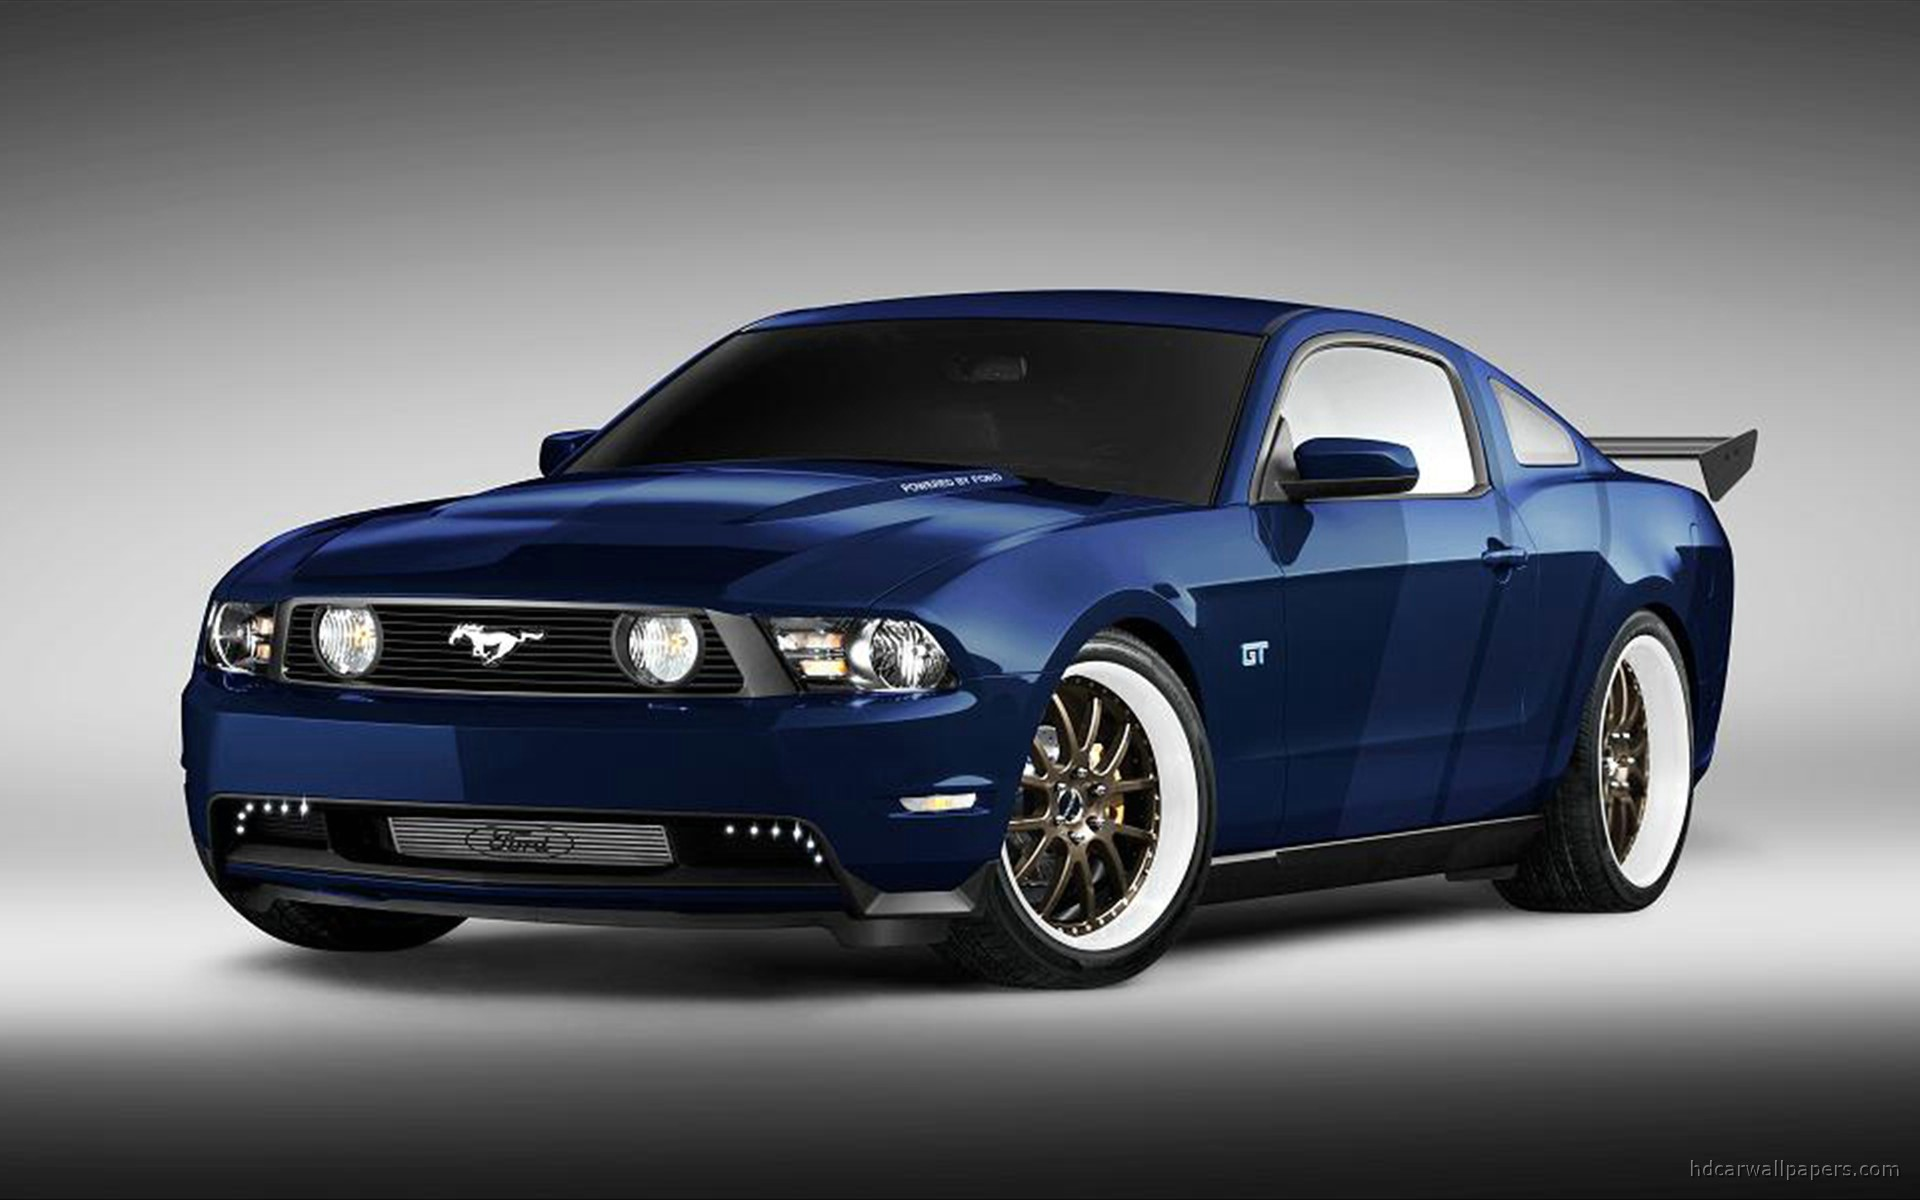 Ford Mustang Wallpaper 5719 Hd Wallpapers in Cars   Imagescicom 1920x1200